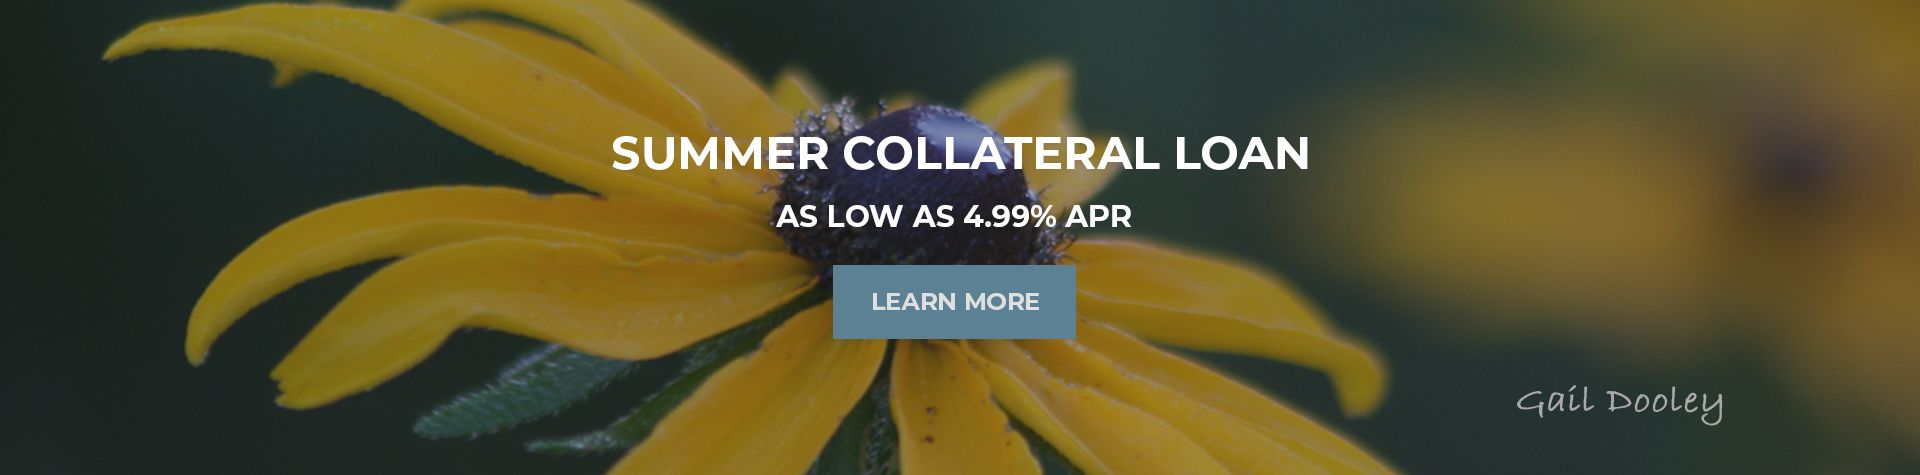 Summer Collateral Loan